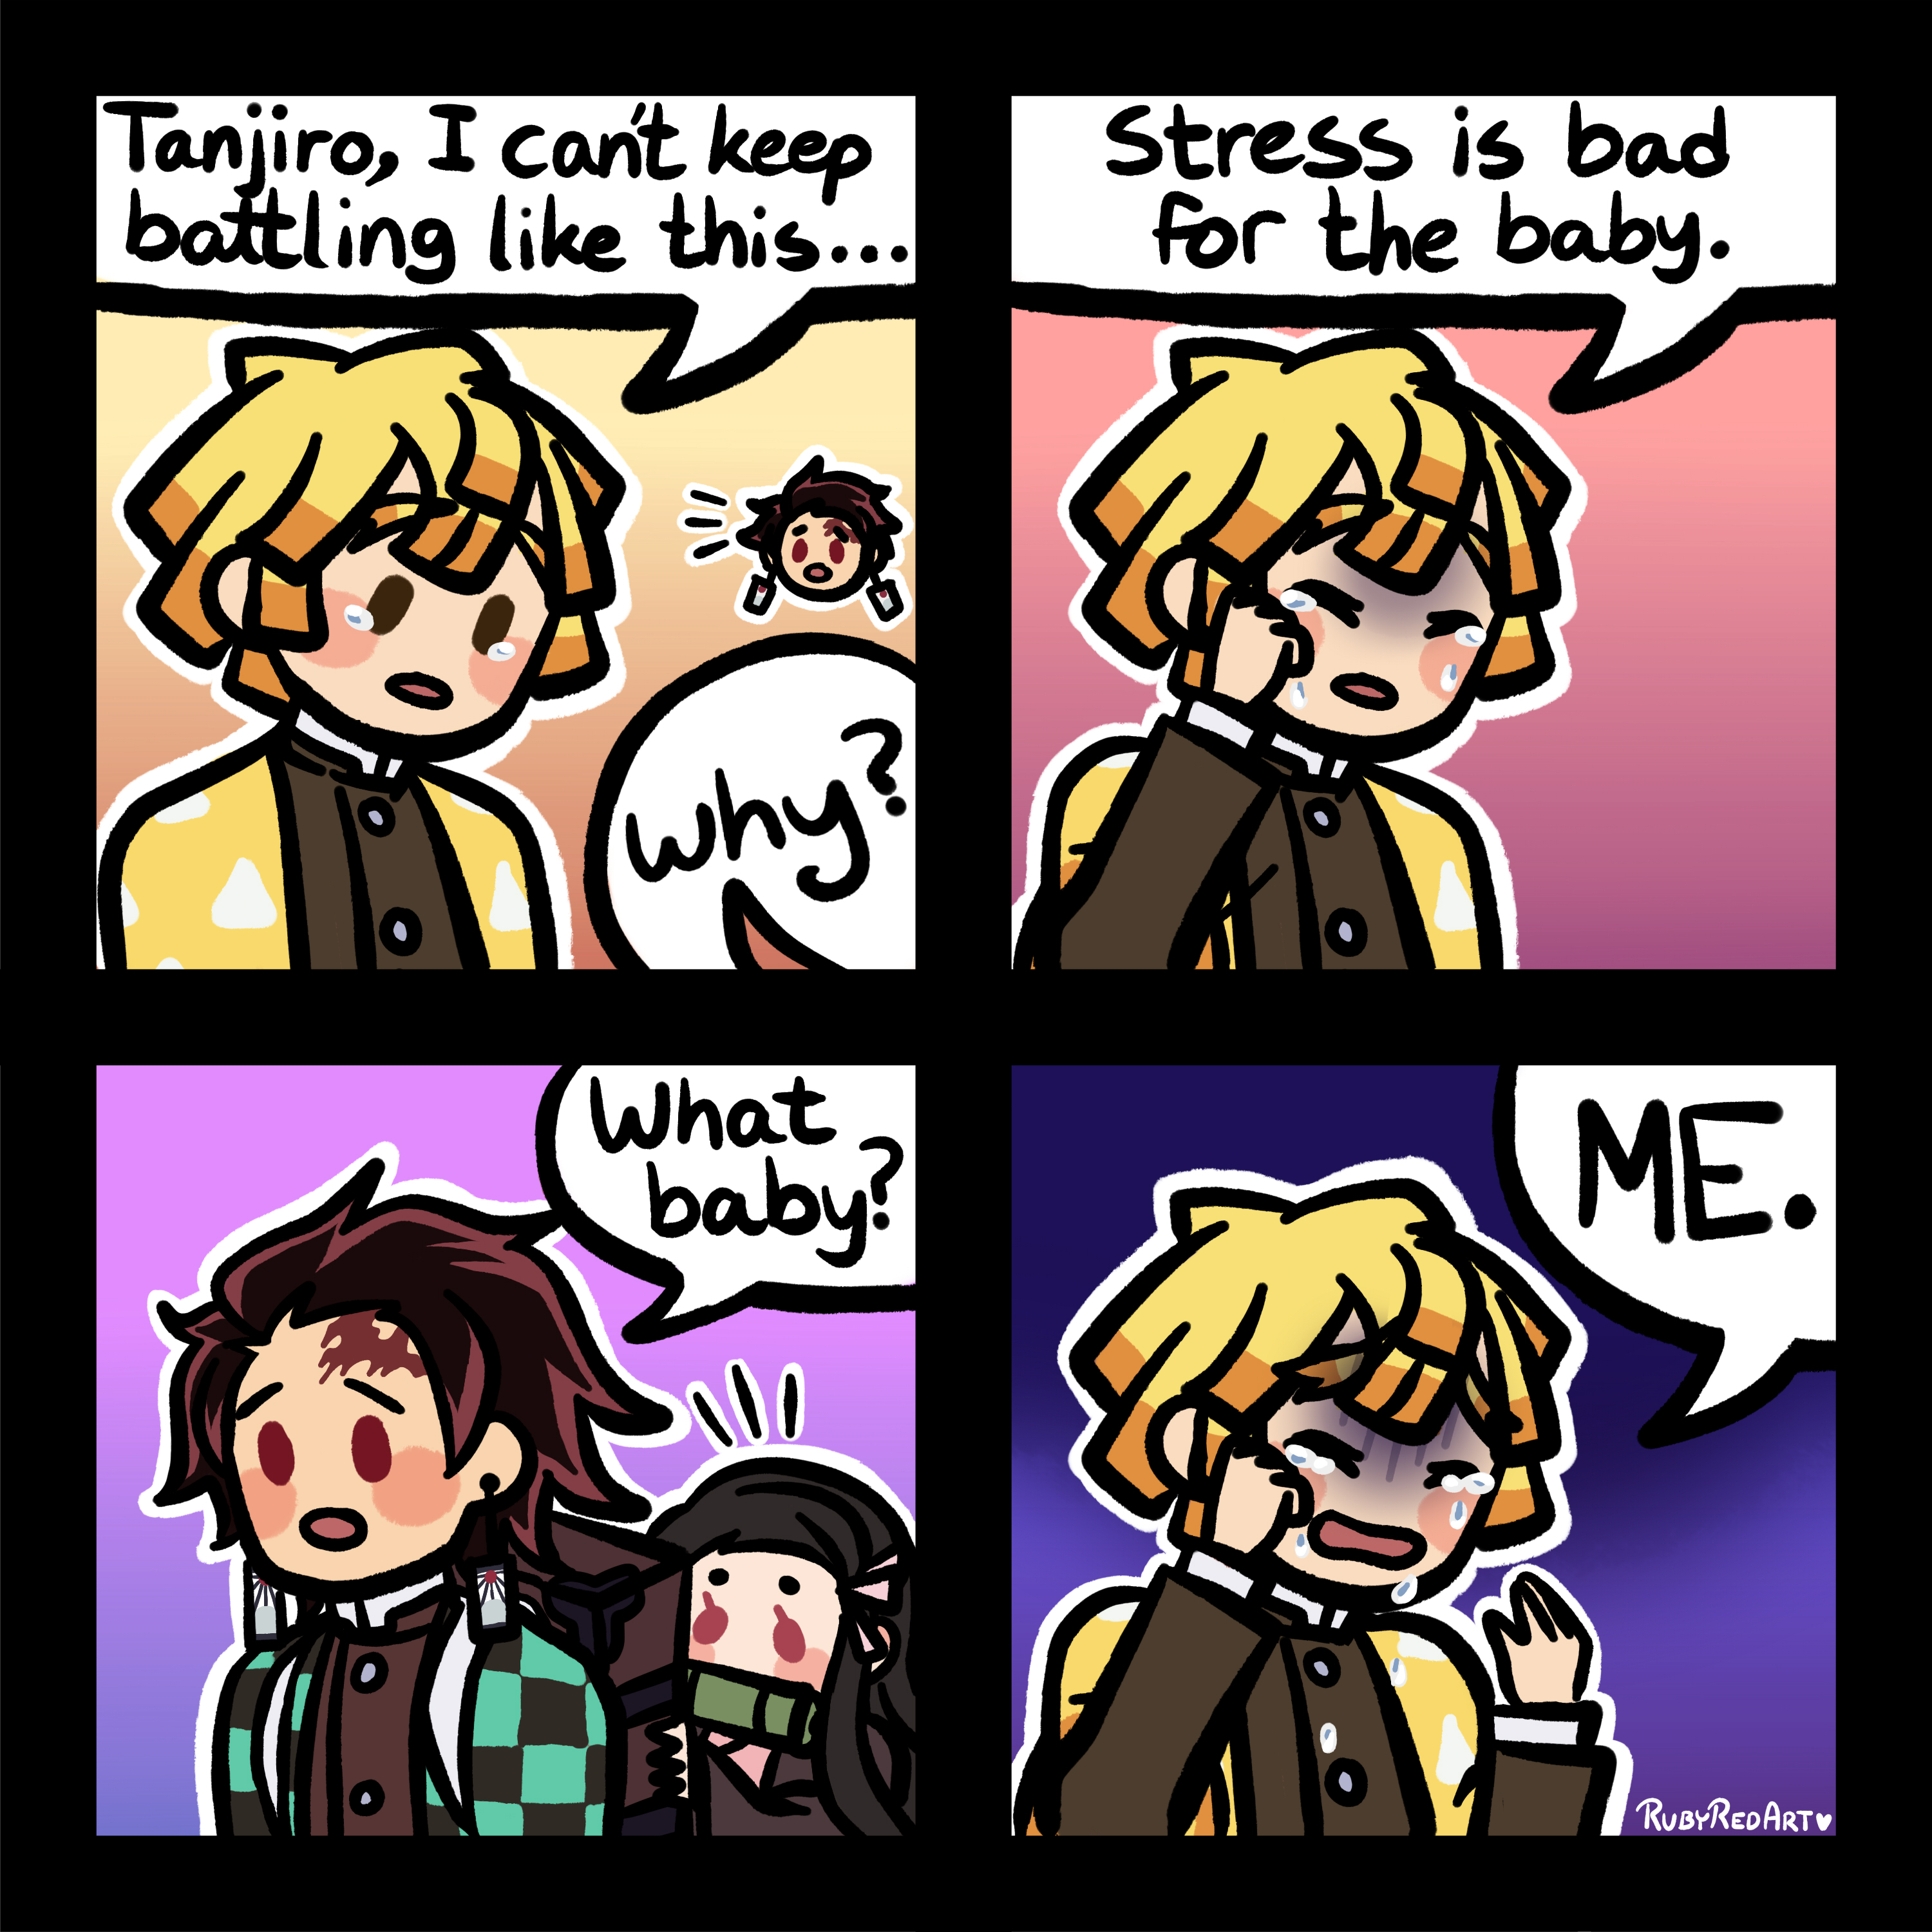 stress_is_bad_for_the_baby.jpg